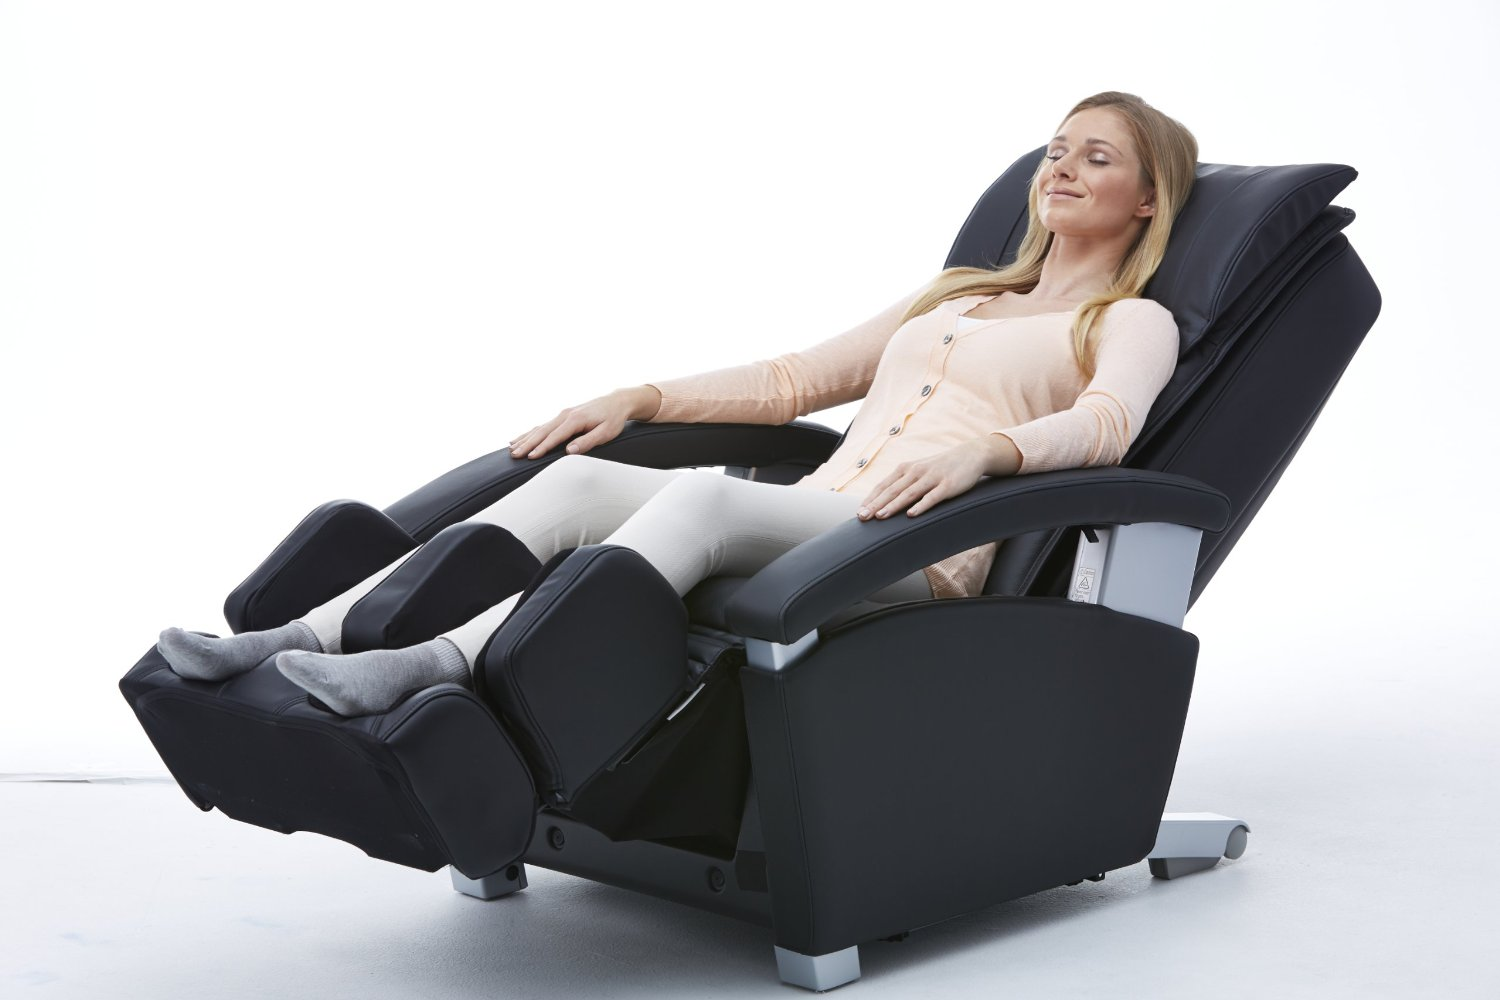 recliner massage chair high back dining room chairs a guide for choosing the best quality